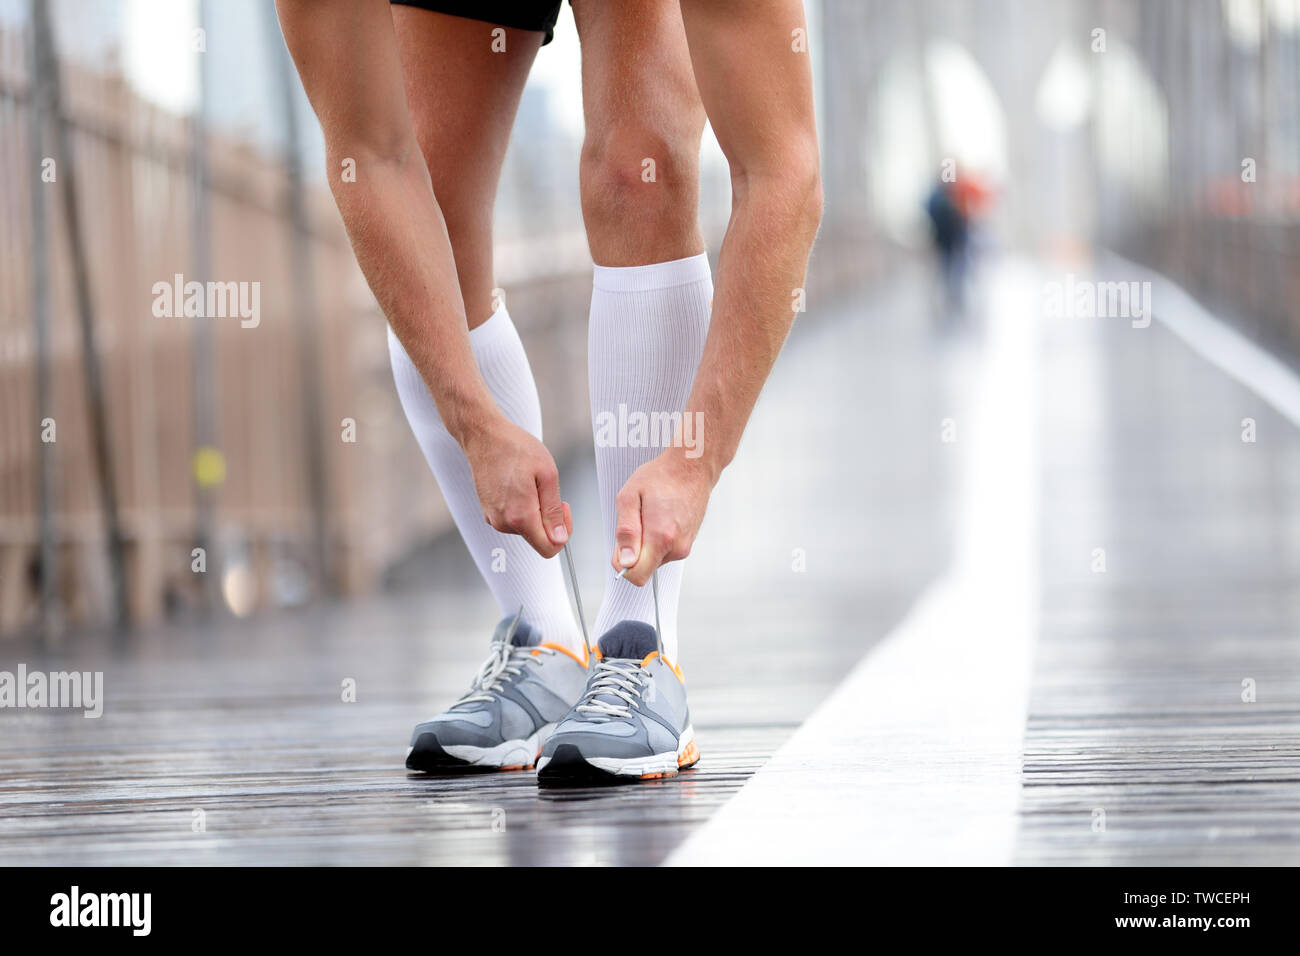 Running shoes - Runner man tying laces, New York City on Brooklyn Bridge. Male athlete runner and feet closeup. Fitness model wearing compression socks. - Stock Image